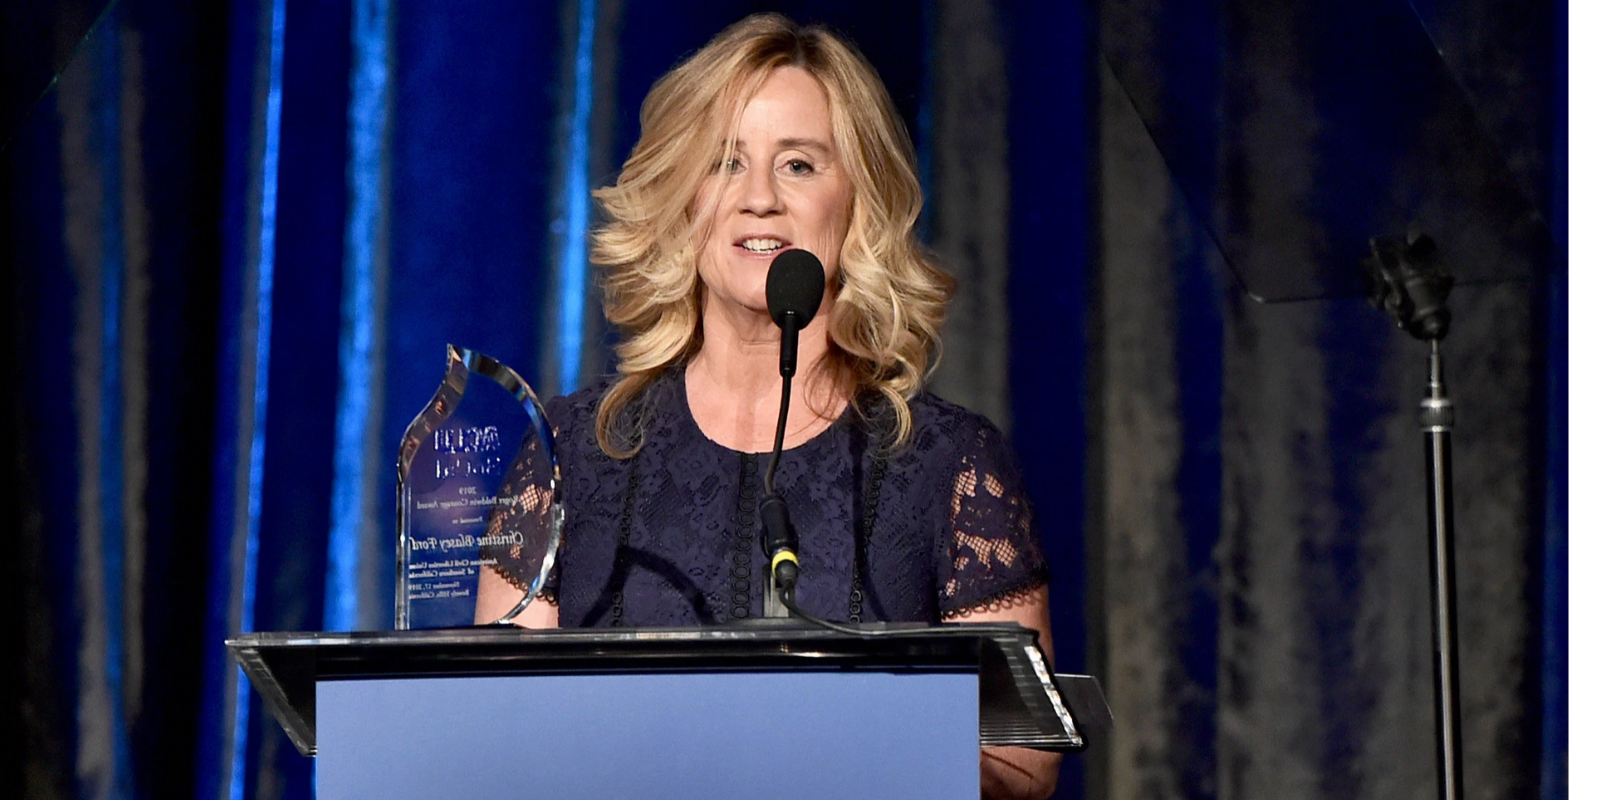 ACLU hits new low by giving Christine Blasey Ford 'courage' award